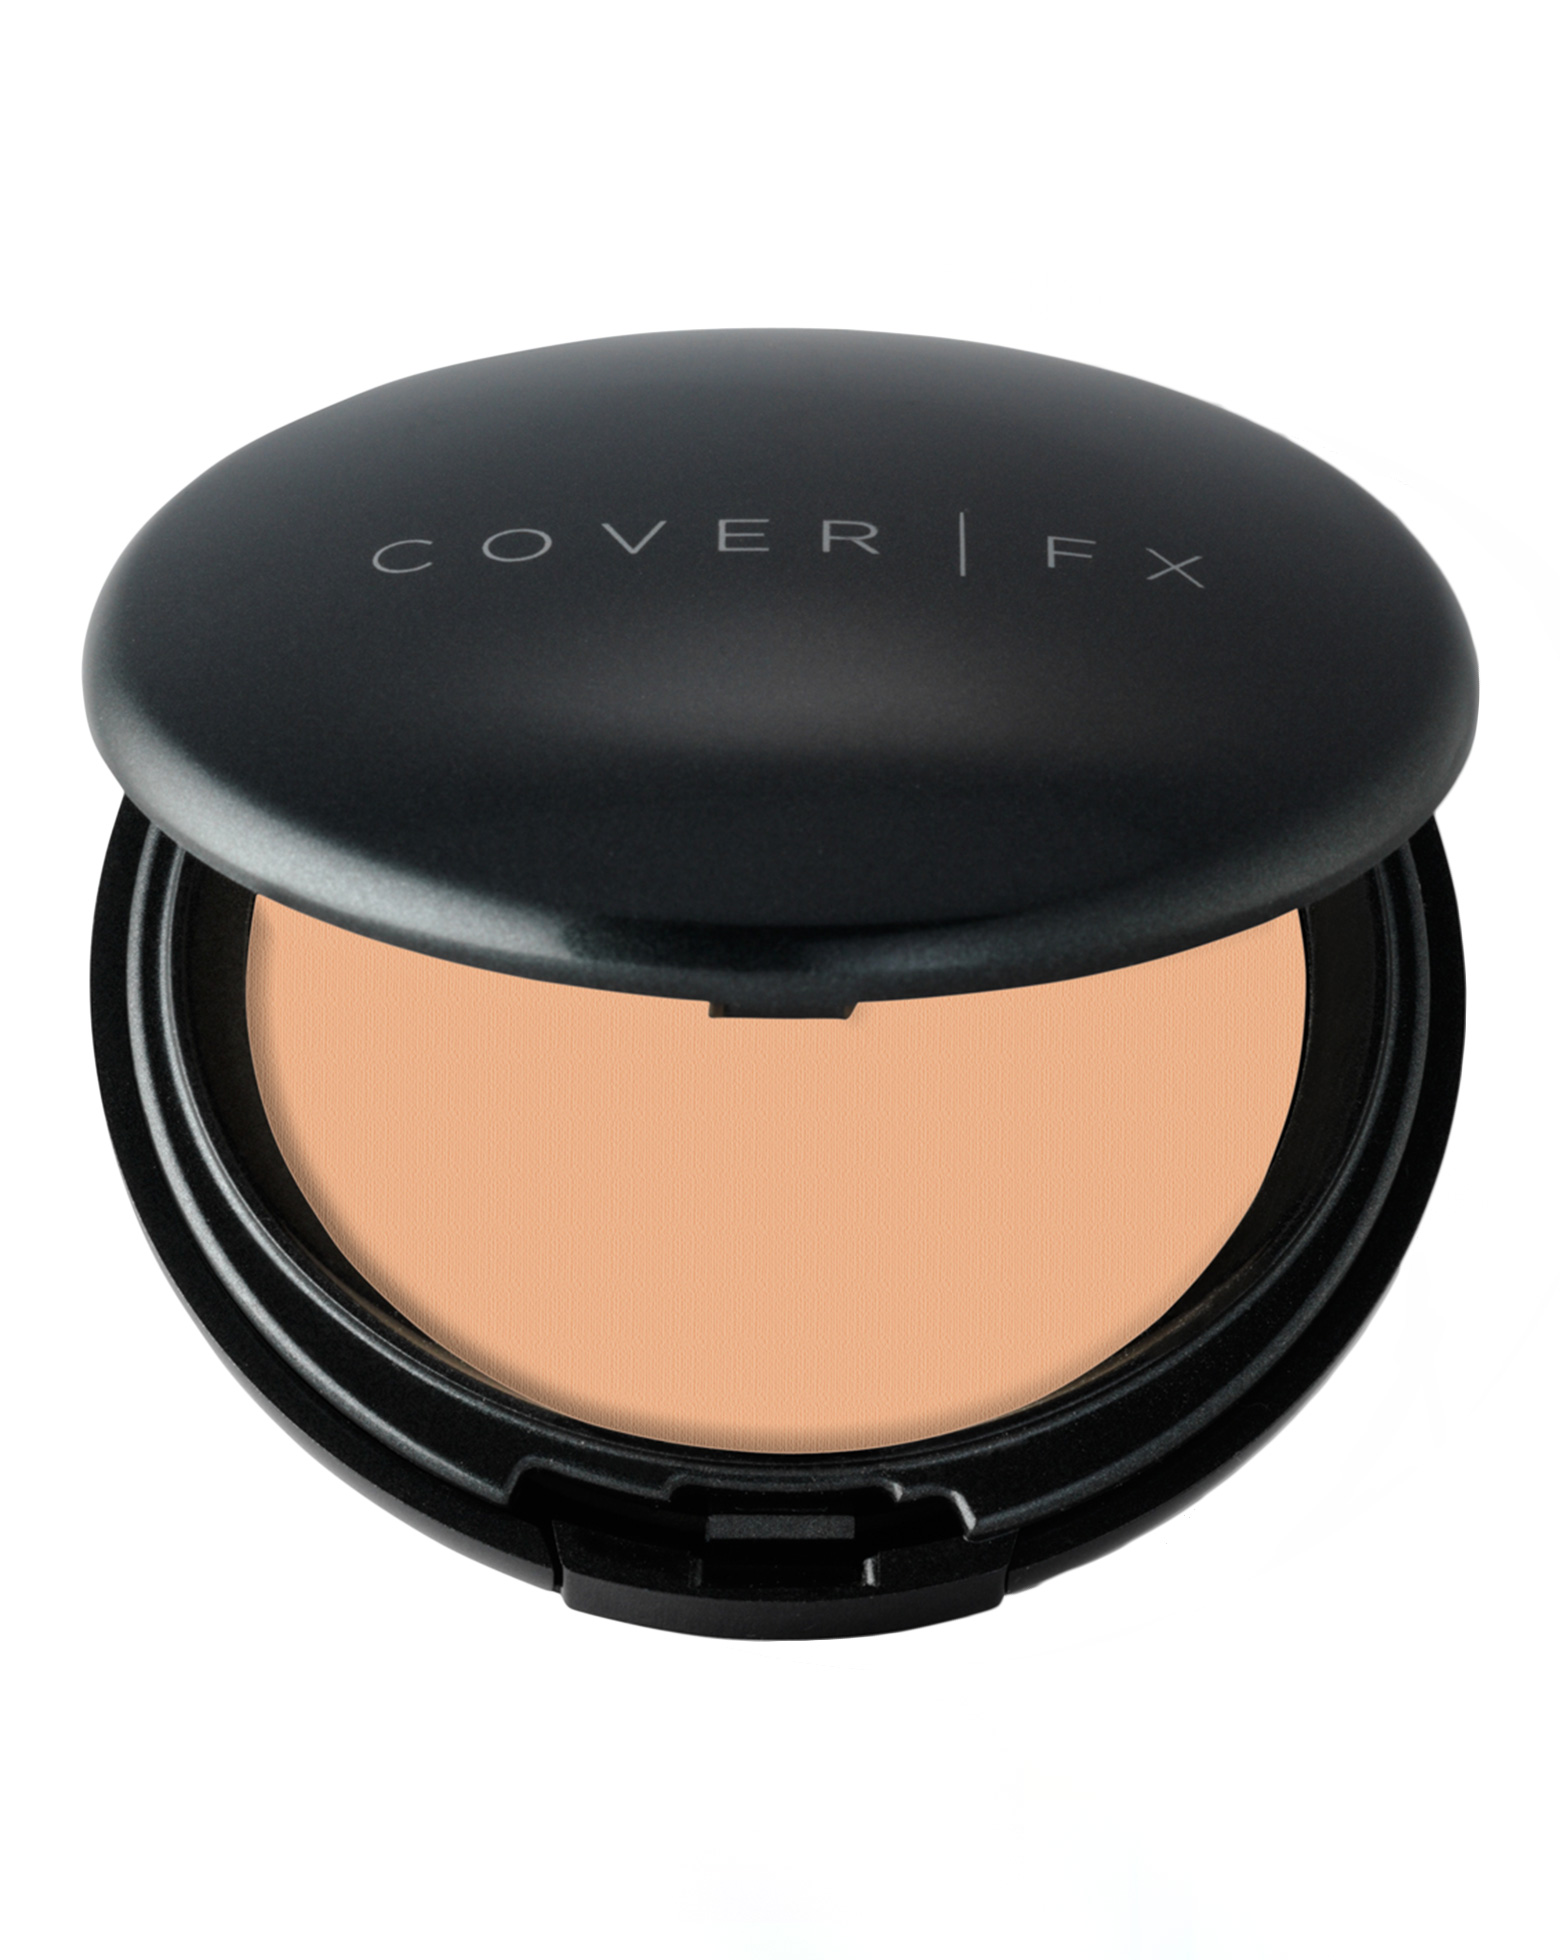 The Powder Puff - Cover FX is the go-to for perfect, editorial quality skin IRL, said every makeup artist ever. While most of the brand's fame comes from its glow-inducing drops, there is an option for our oily skinned brothers and sisters, too.The Pressed Mineral Foundation is matte with a talc-free formulation. Read: no more looking and feeling chalky with powders! This compact houses Amazonian clay to whisk away shine without drying because of the amino acids included to moisturize the skin. Check, please!